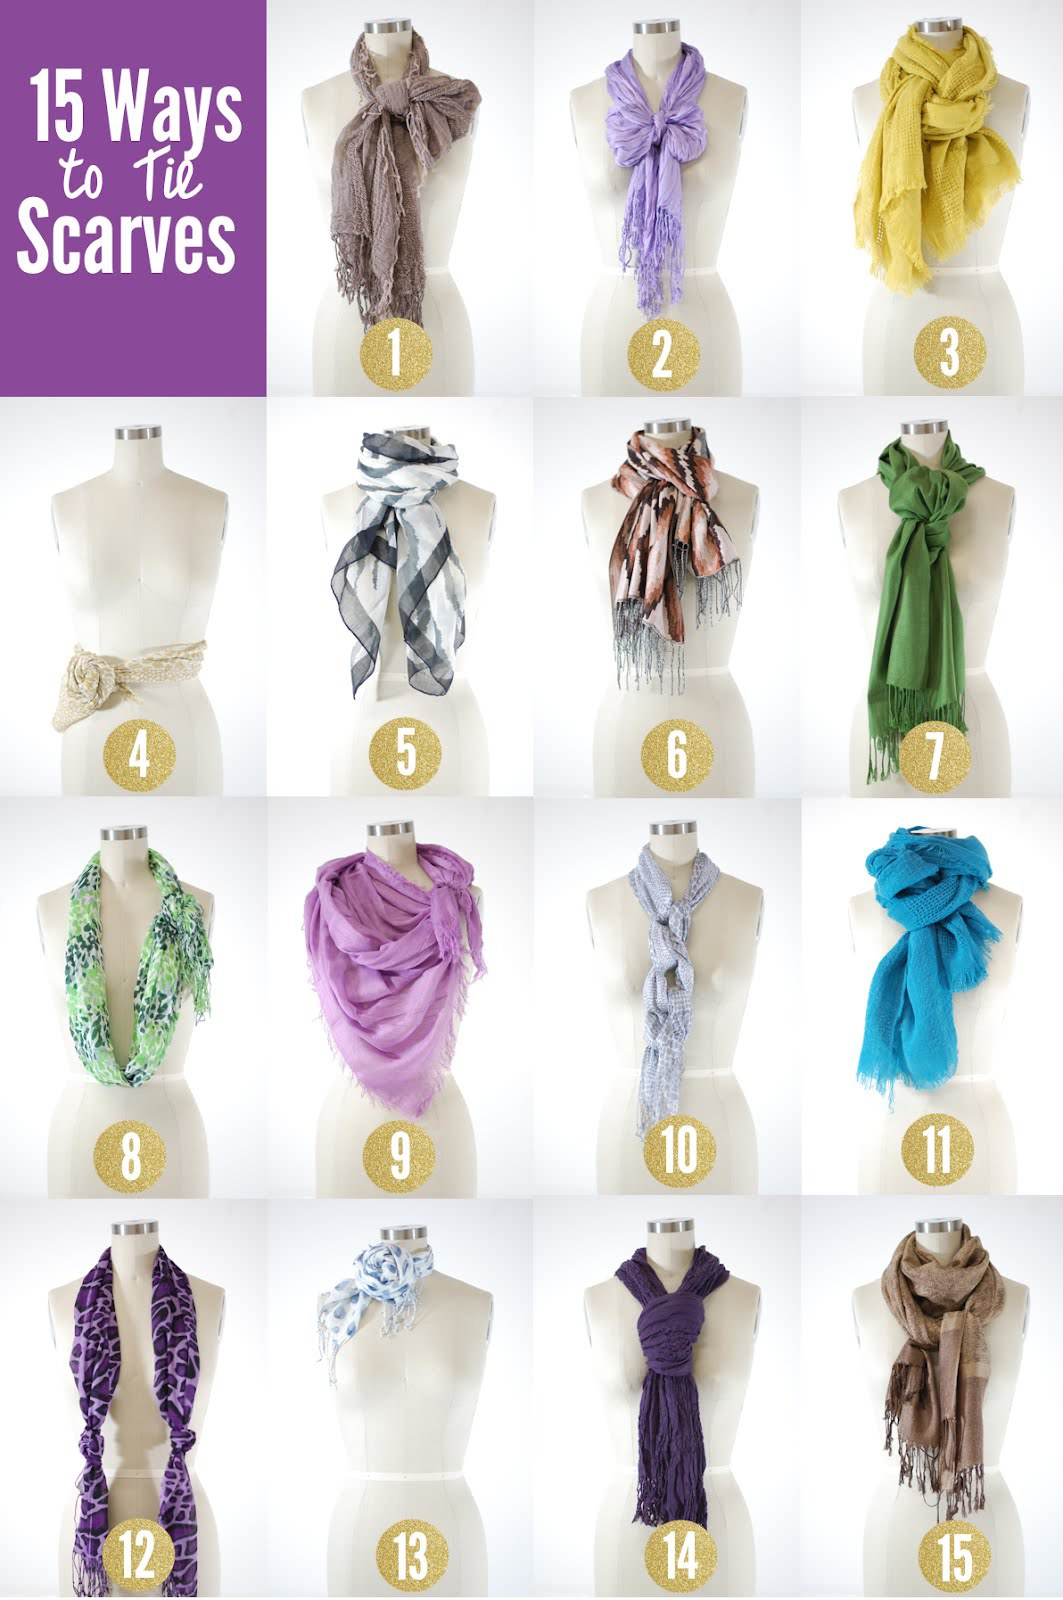 15 Chic Ways To Tie A Scarf: 15 Chic Ways To Tie A Scarf